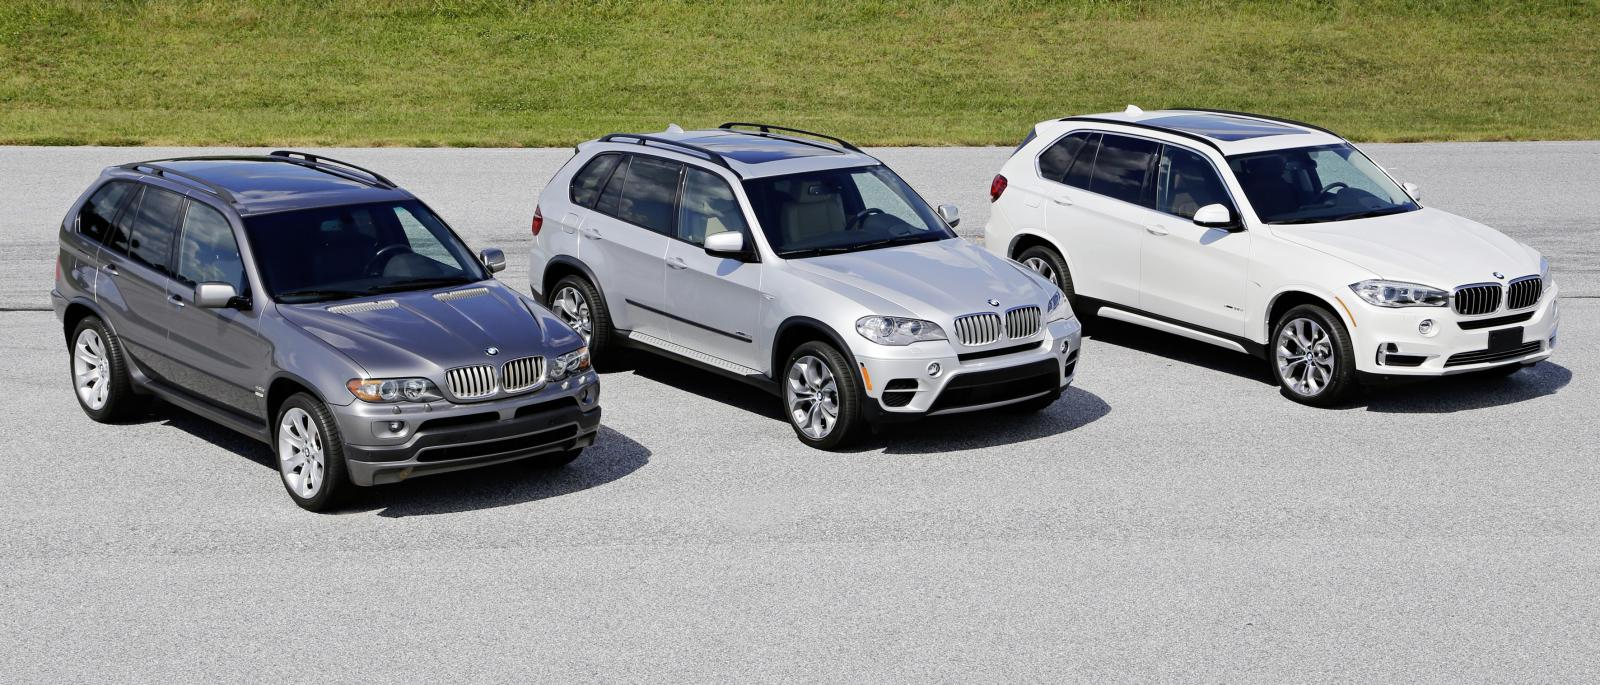 Photo of BMW X5'in 15. doğum günü